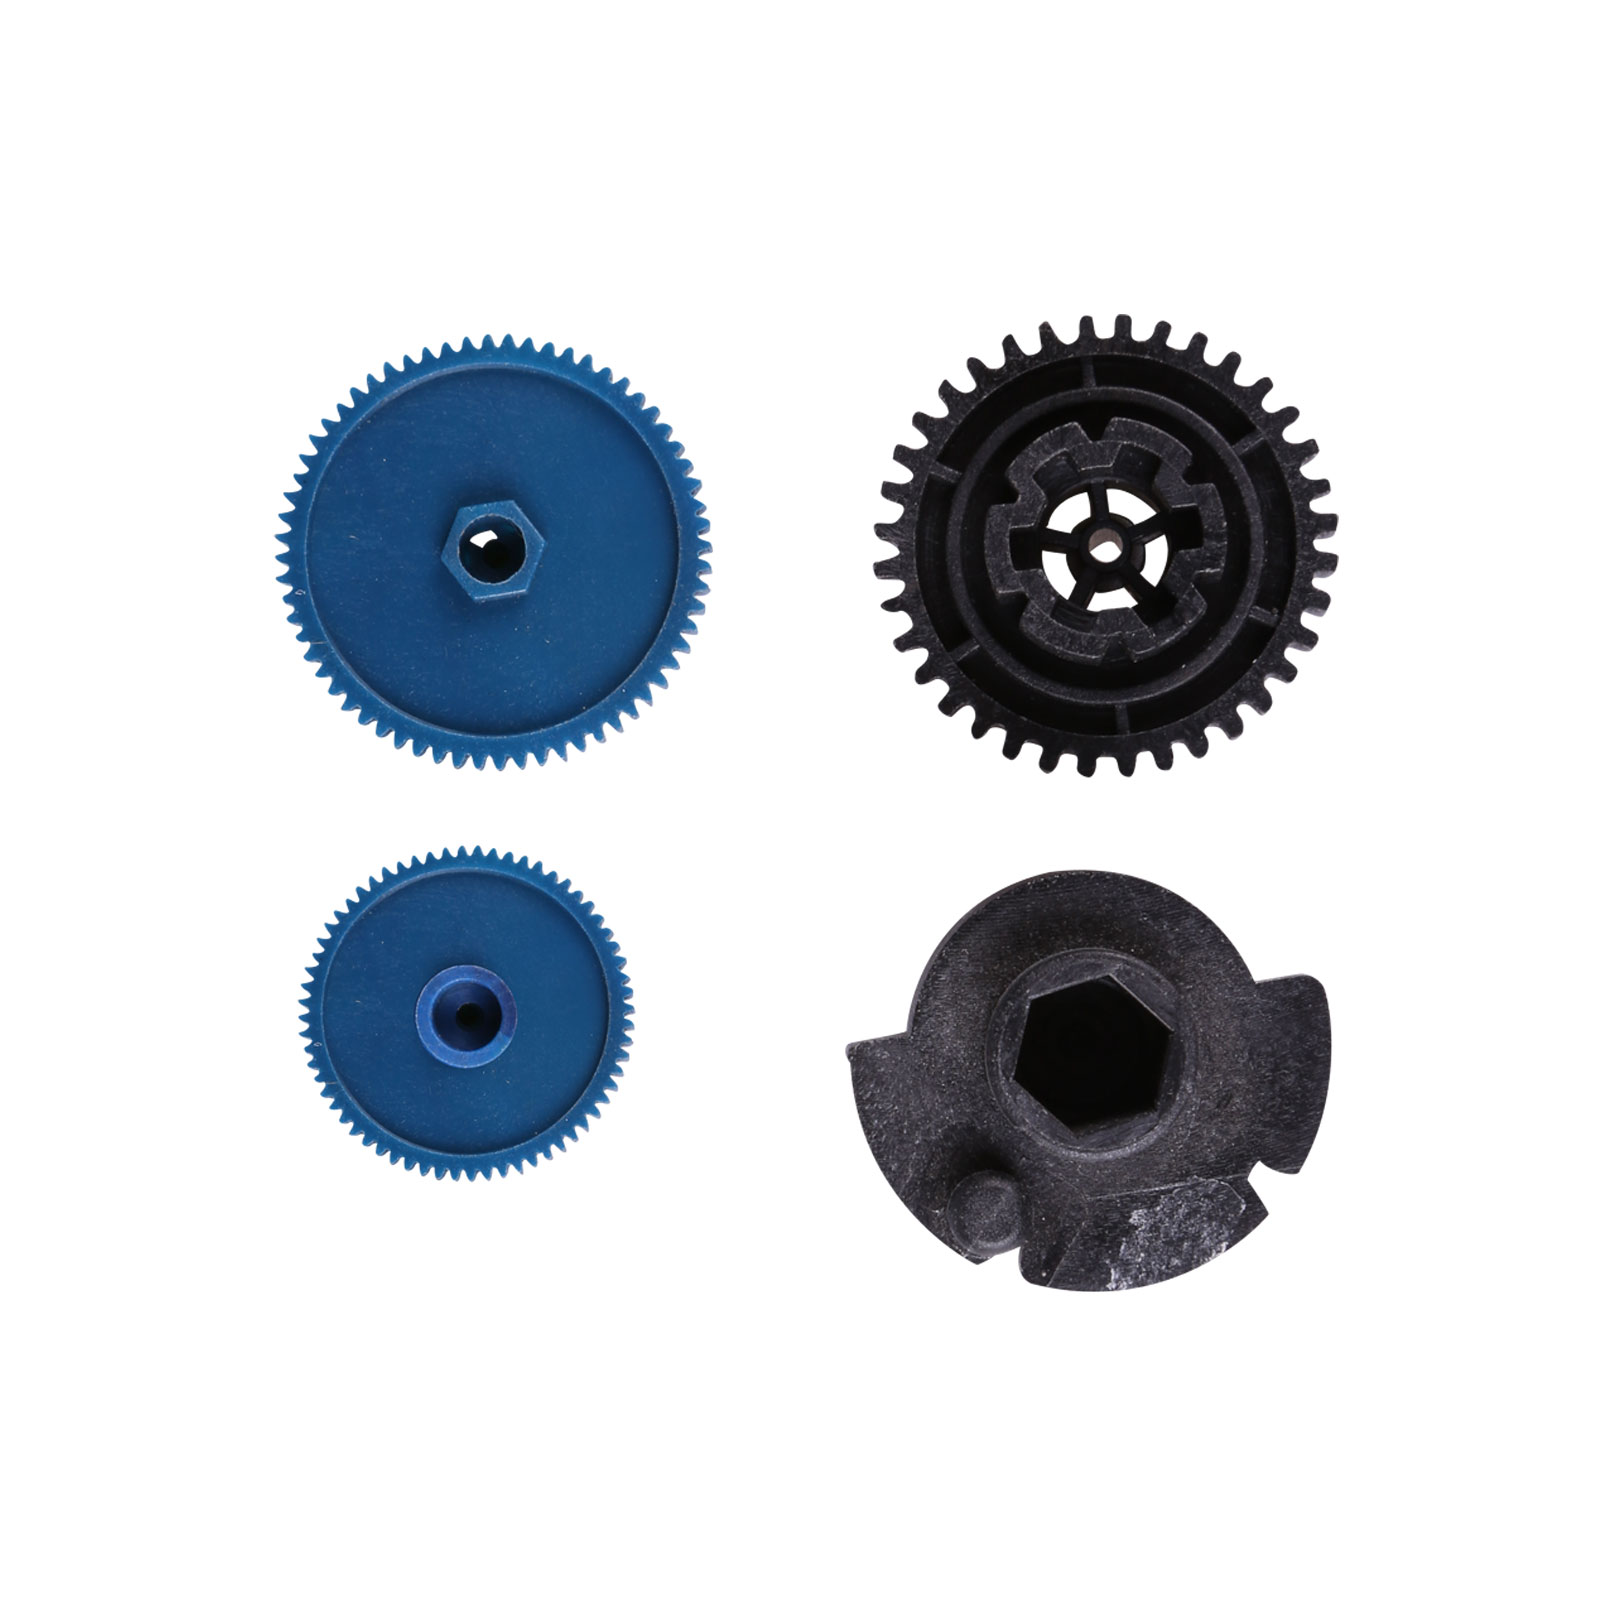 1x Air Conditioner Vent Flap Motor Gear Kit For Mercedes W203 W211 4 Piece Blue